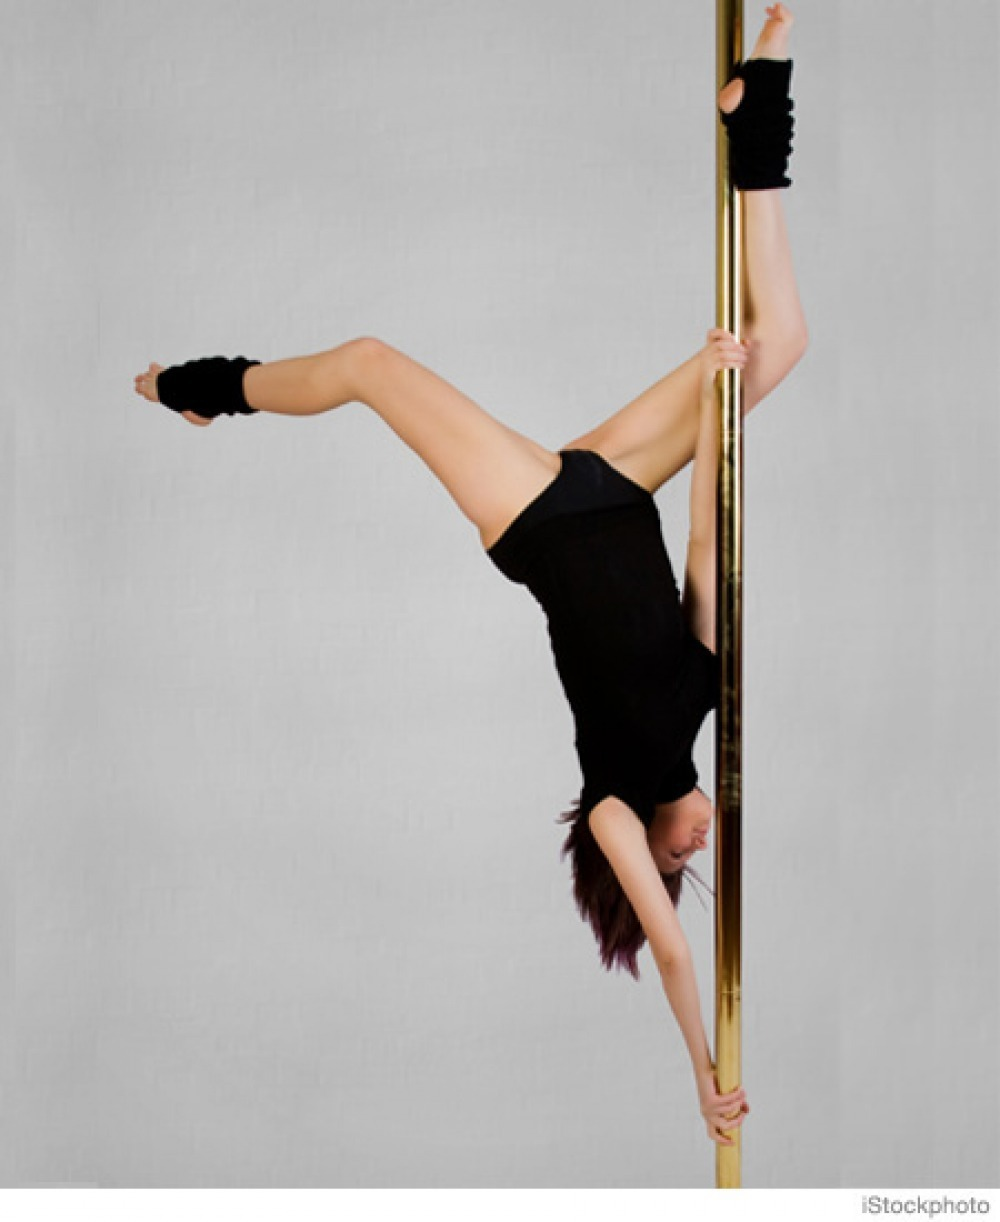 Pole Dancing images Pole Moves HD wallpaper and background ...